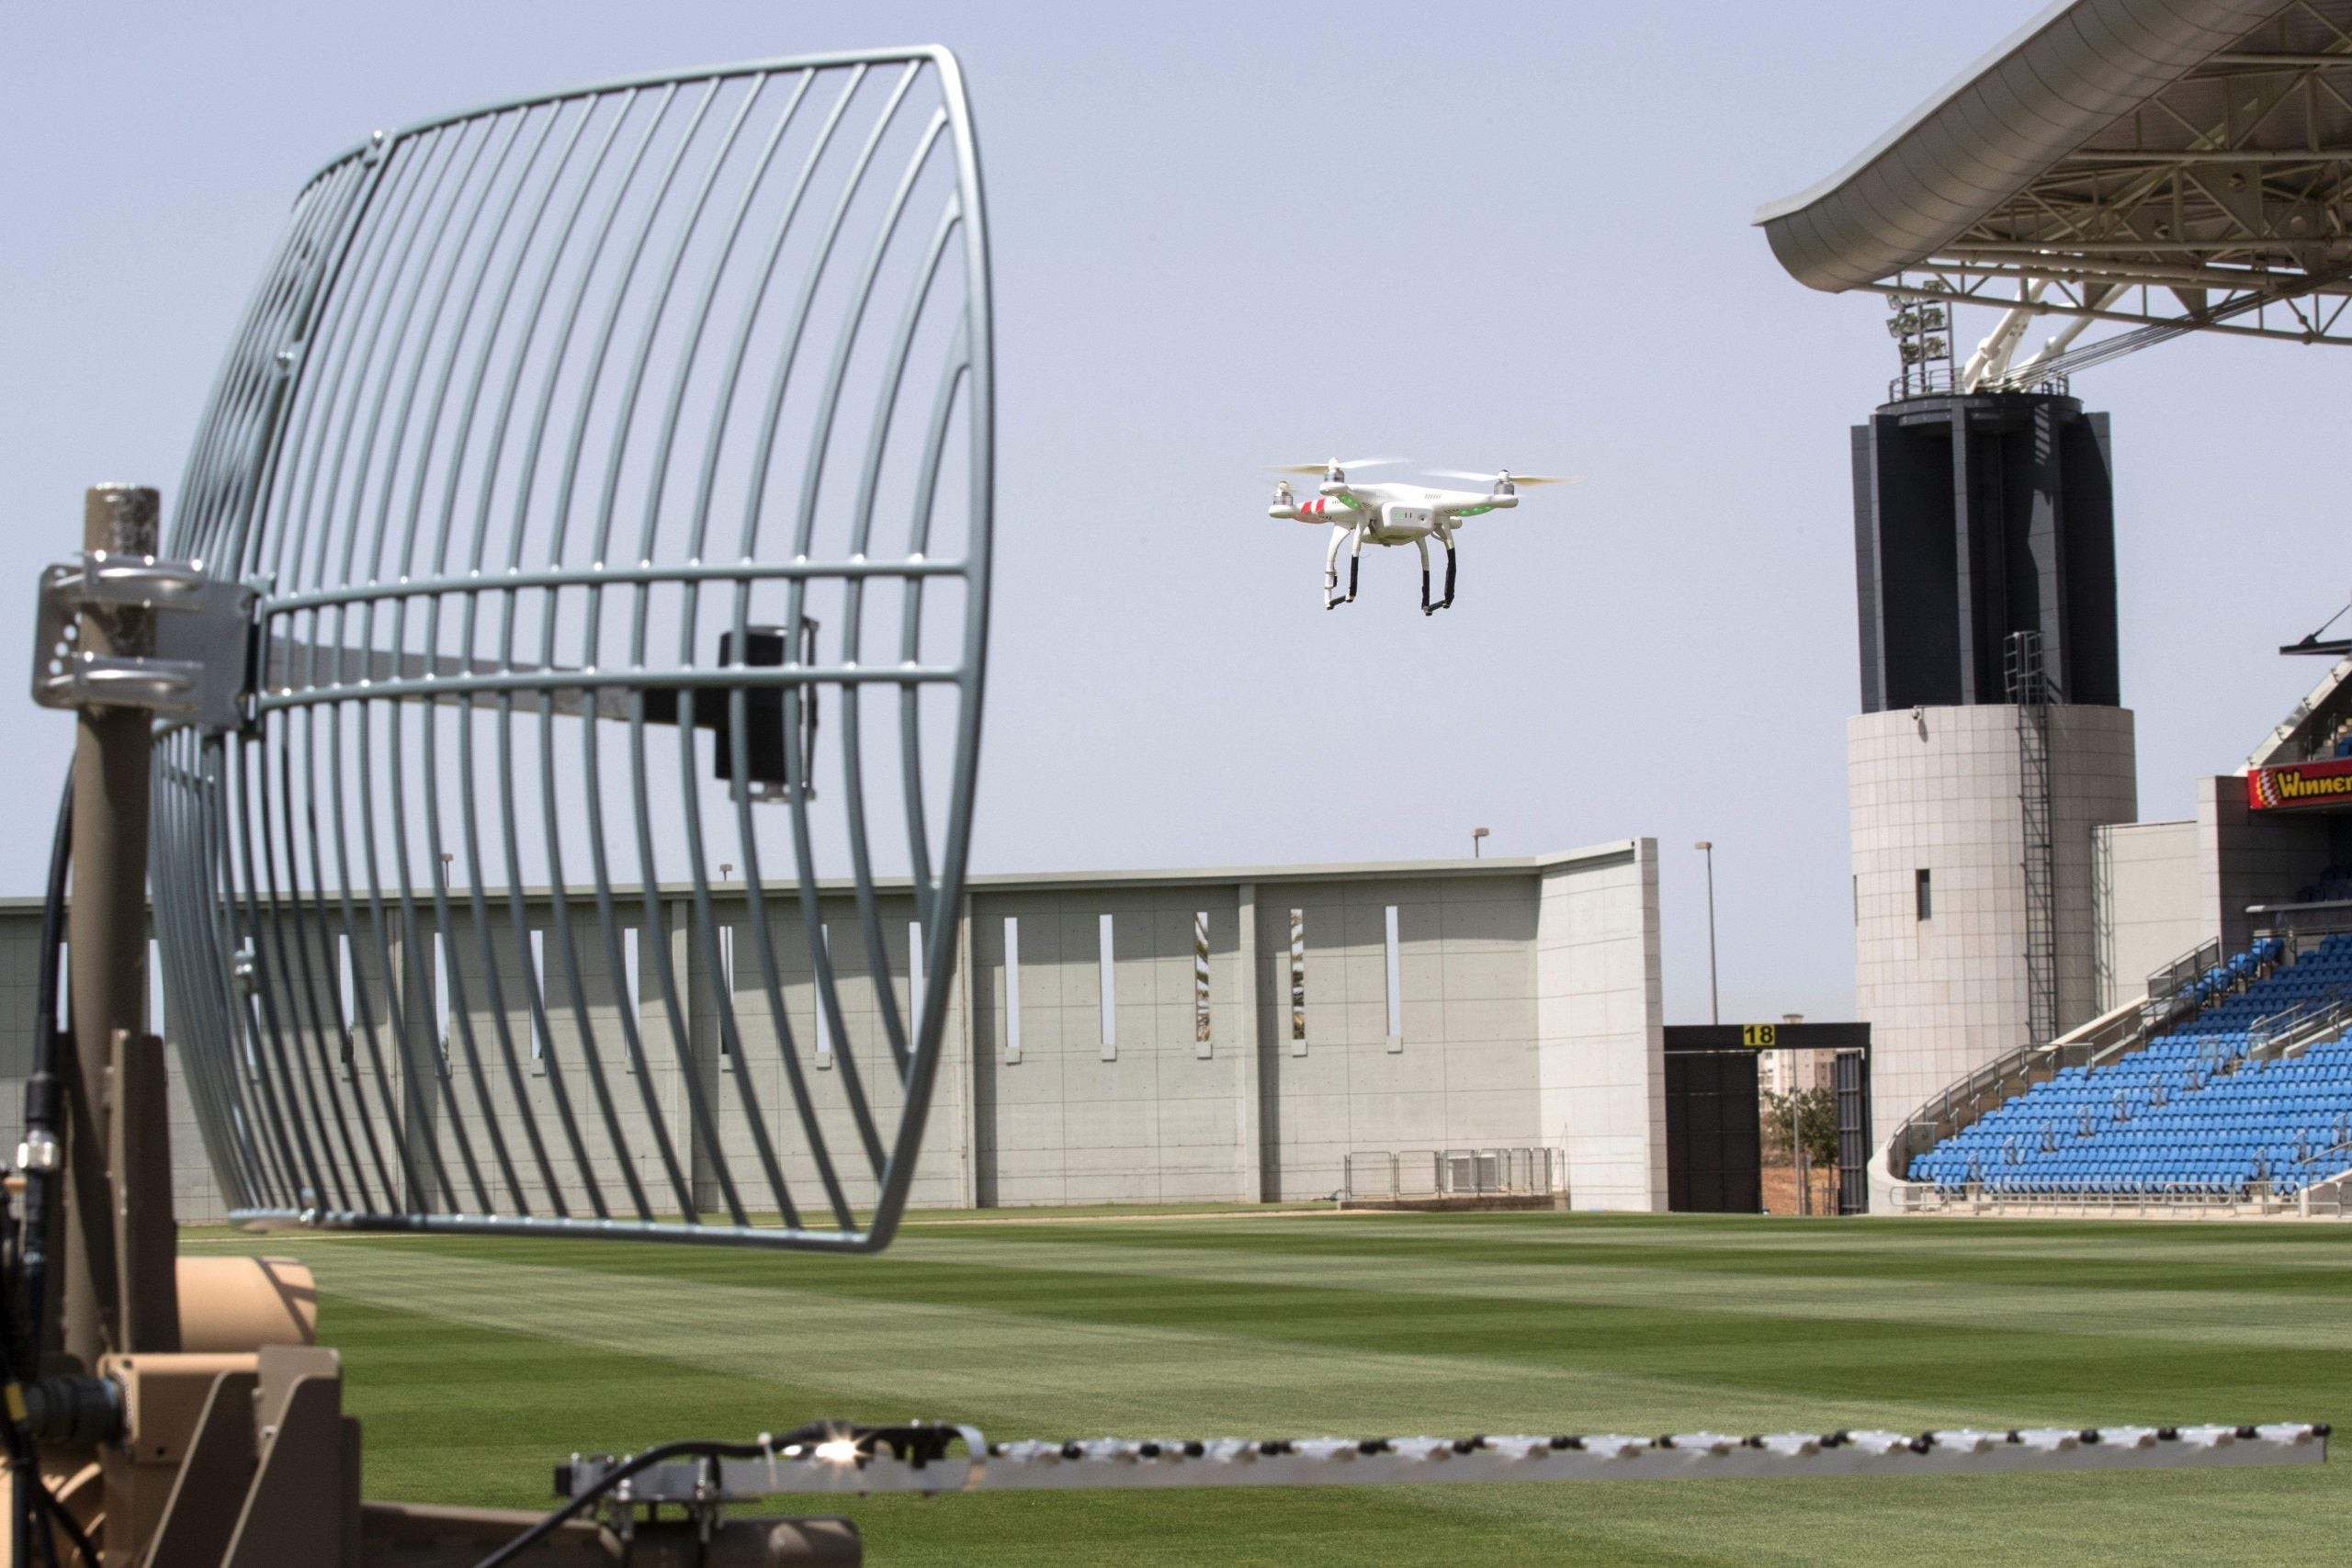 There'll come a day when professional football is played by drones